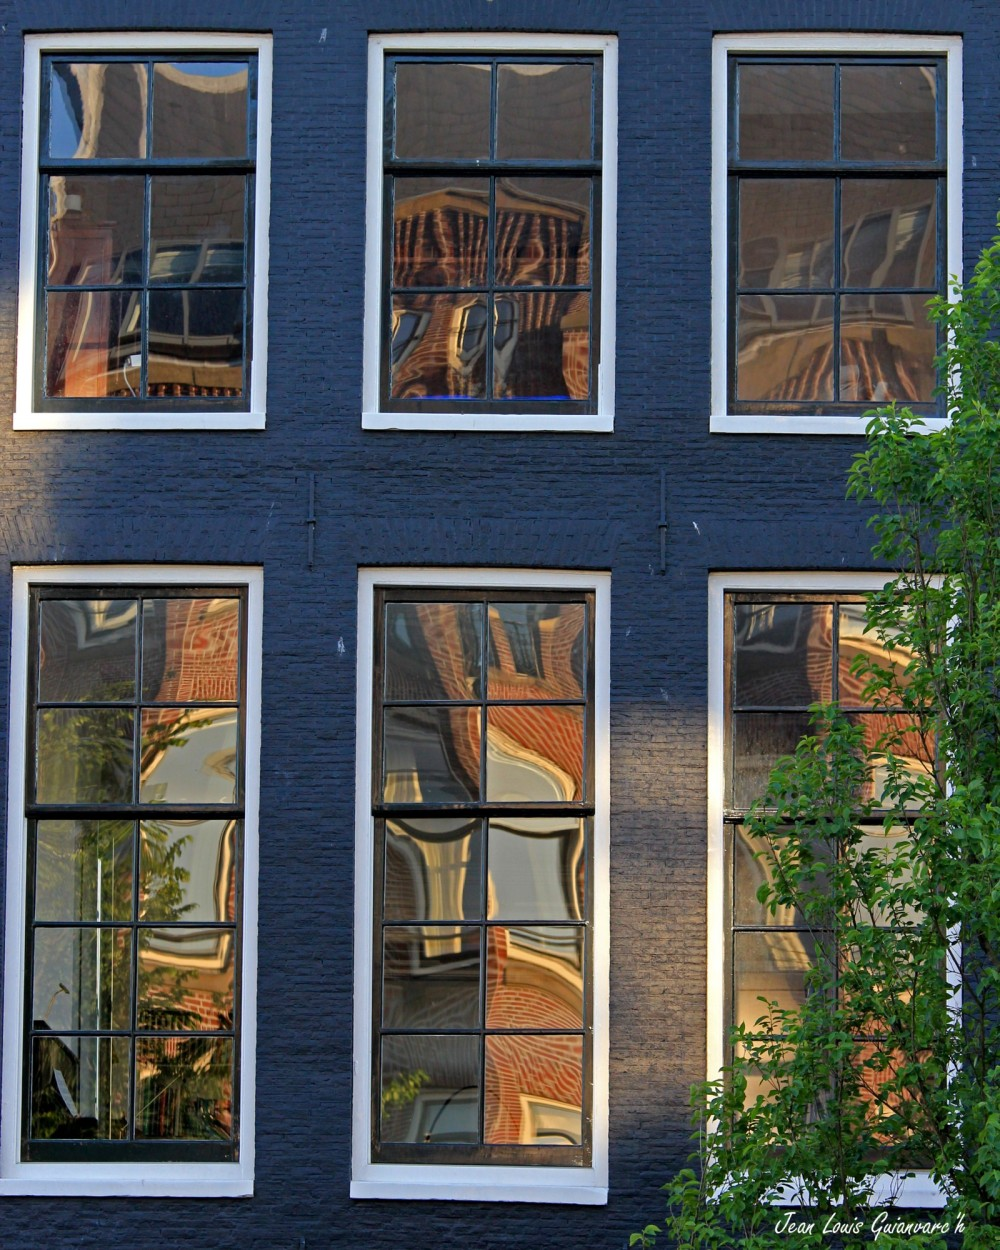 Fenêtres d'Amsterdam (1) / Windows of Amsterdam